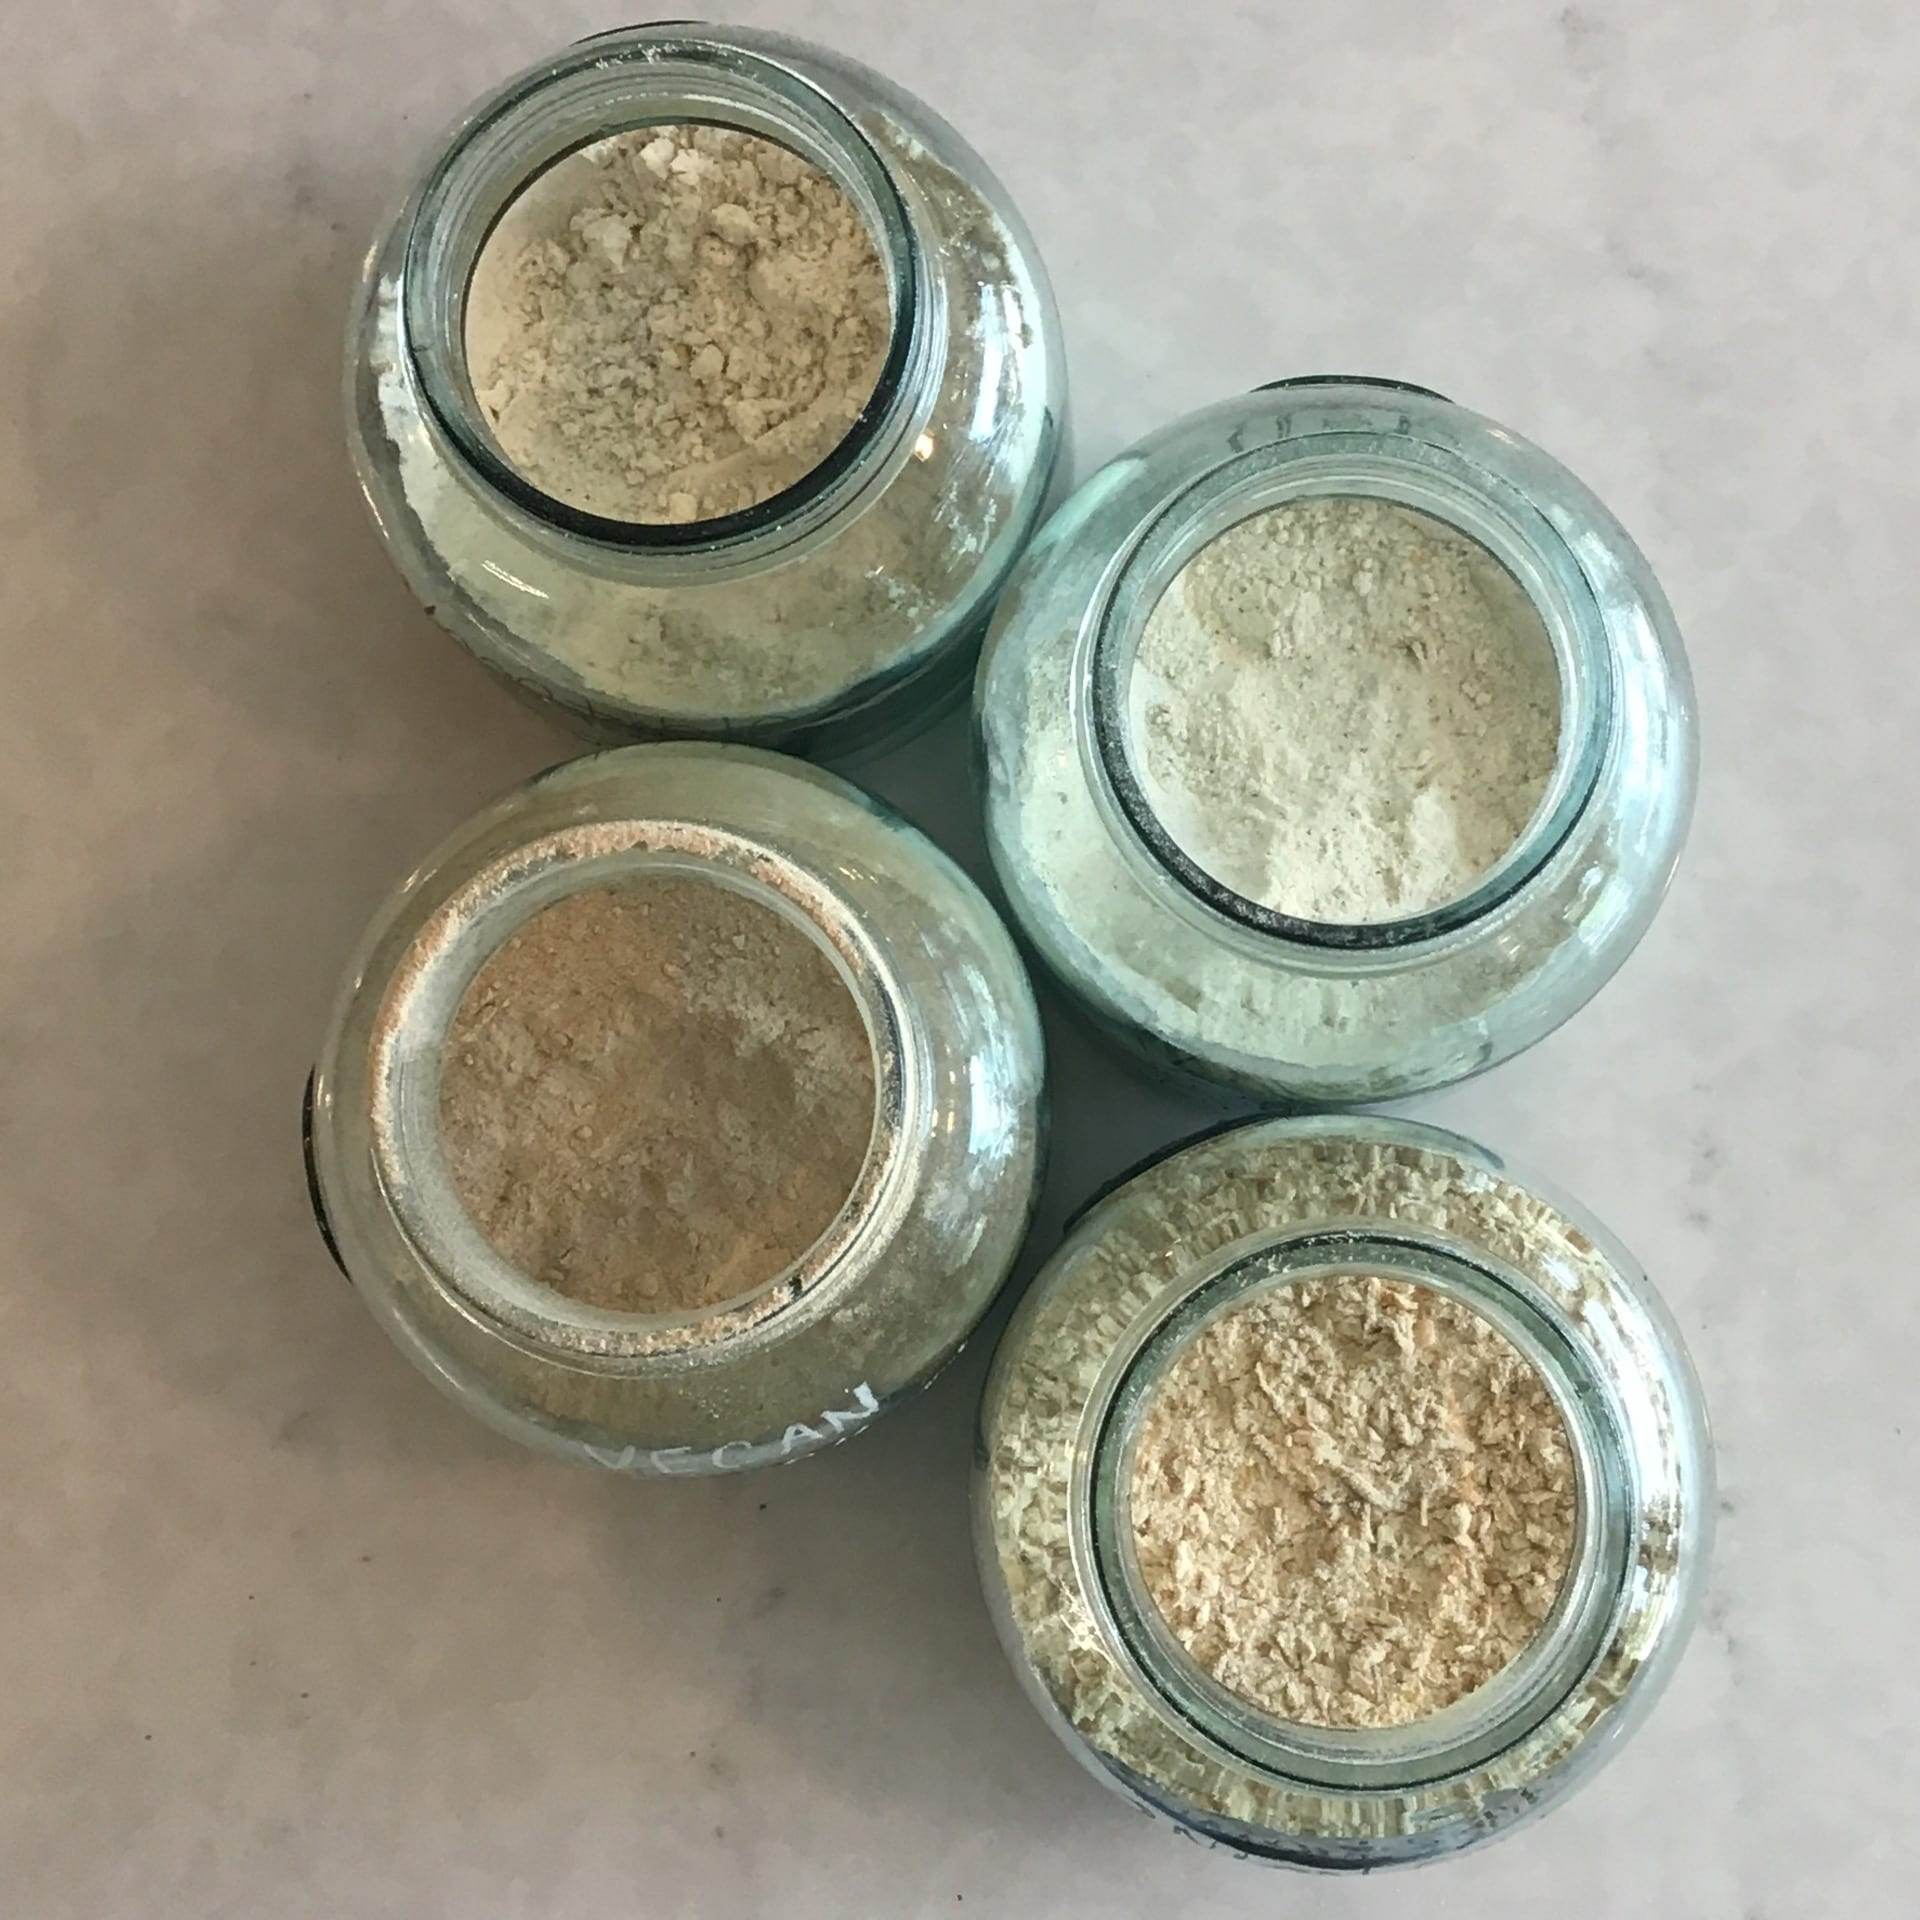 bulk vegan broth powder spice blends - easily zero waste solution to broth